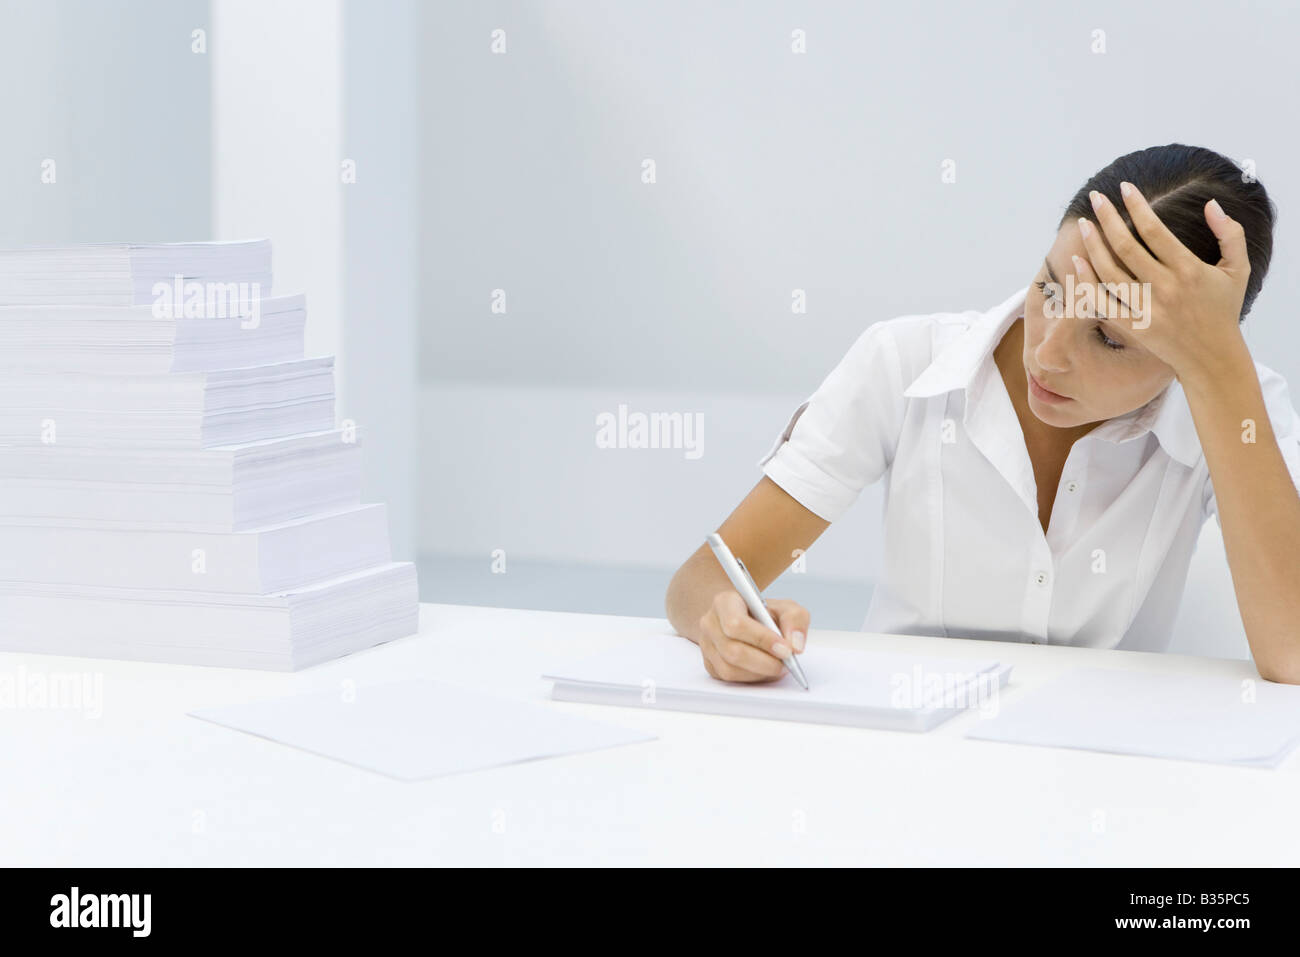 Woman holding her forehead, writing on blank sheet of paper, looking at staggered pile of paper - Stock Image